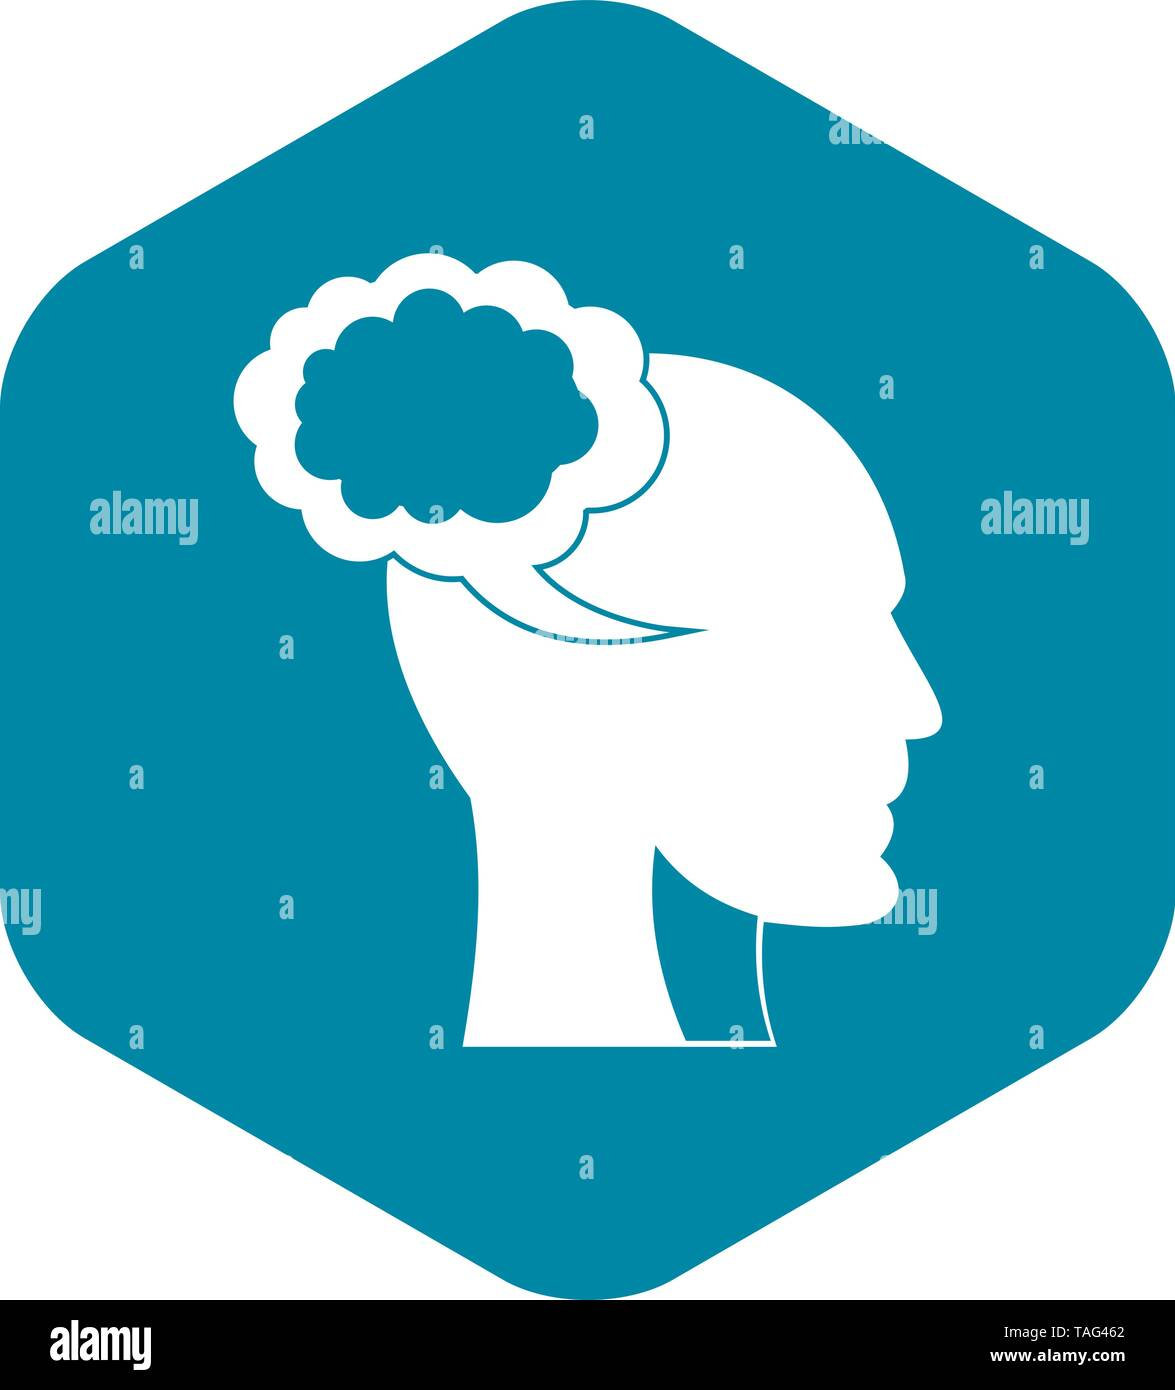 Speech bubble with human head icon, simple style - Stock Image